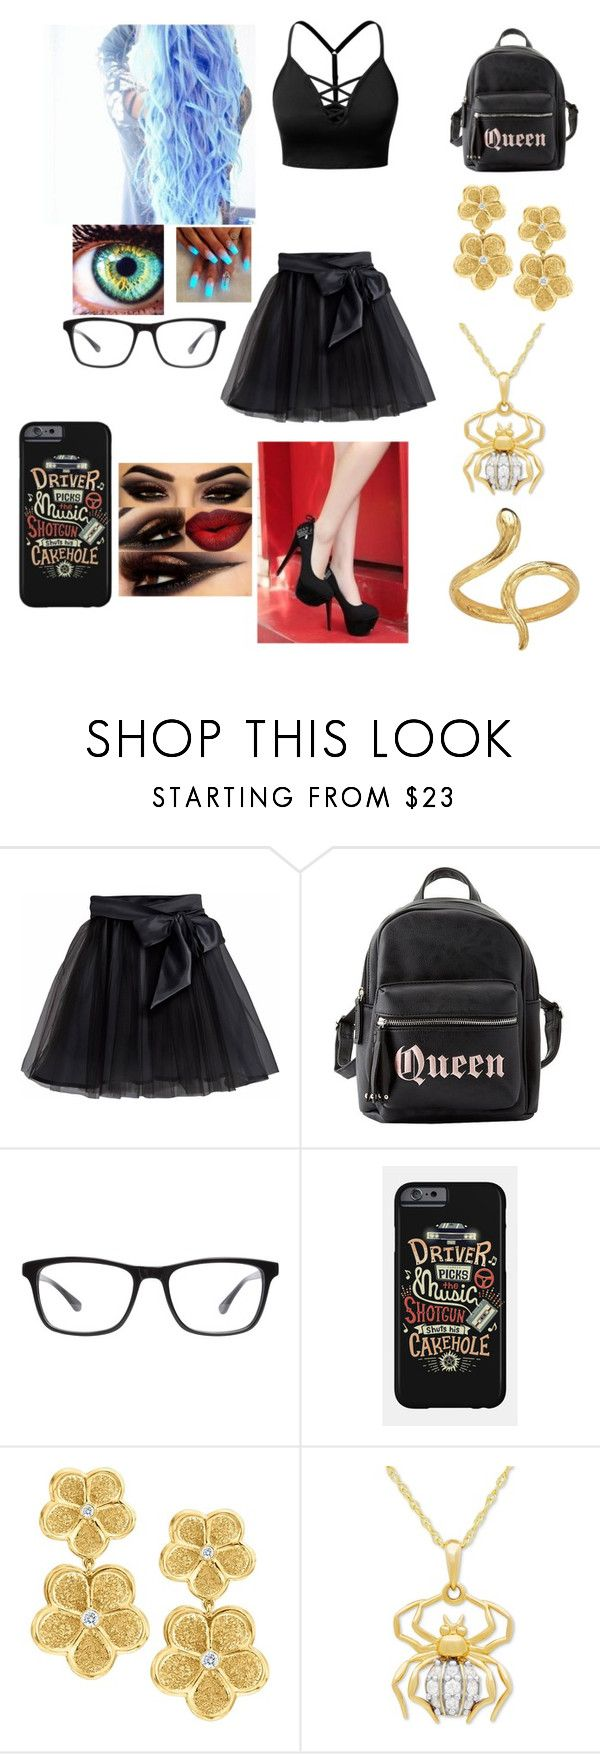 """Untitled #74"" by skyepicness on Polyvore featuring J.TOMSON, Little Wardrobe London, Charlotte Russe, Joseph Marc and Gumuchian"